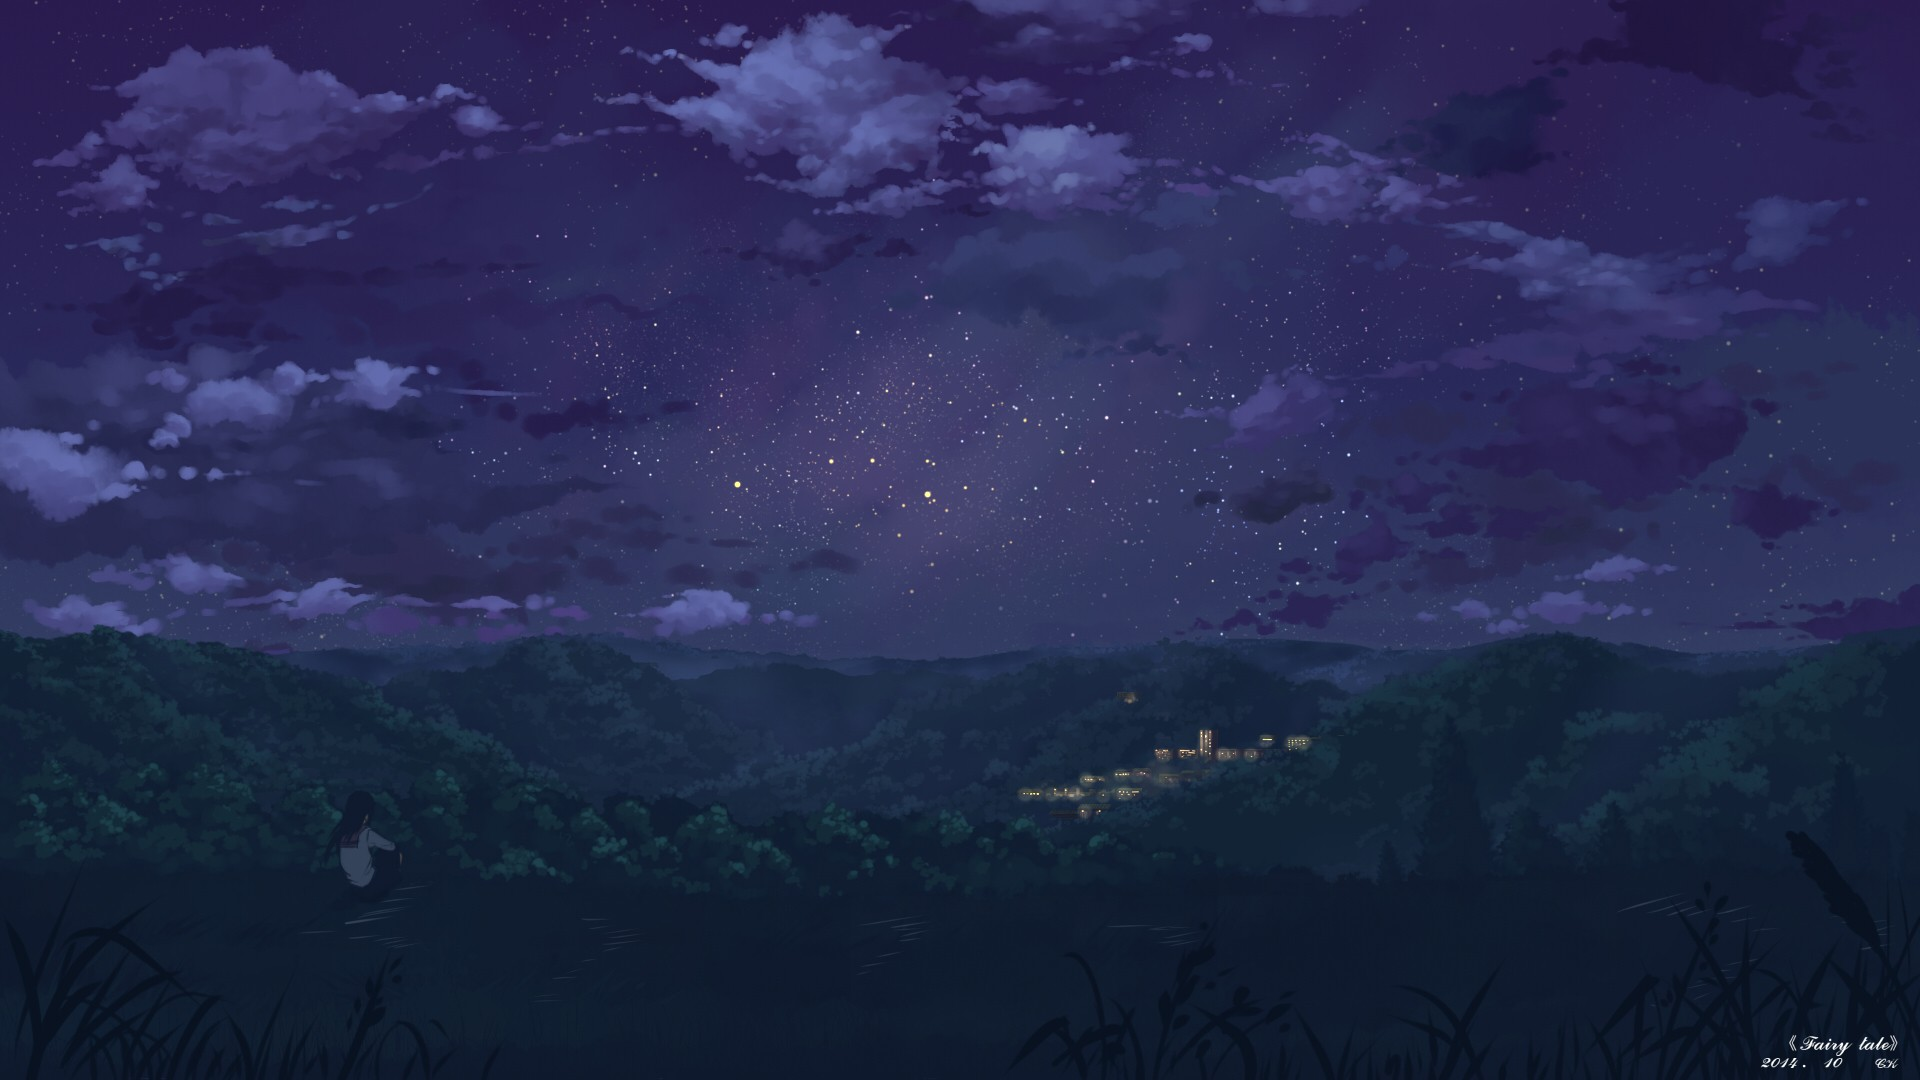 Free Download Emo Girl Wallpapers For Mobile Anime Night Landscape Stars Wallpapers Hd Desktop And